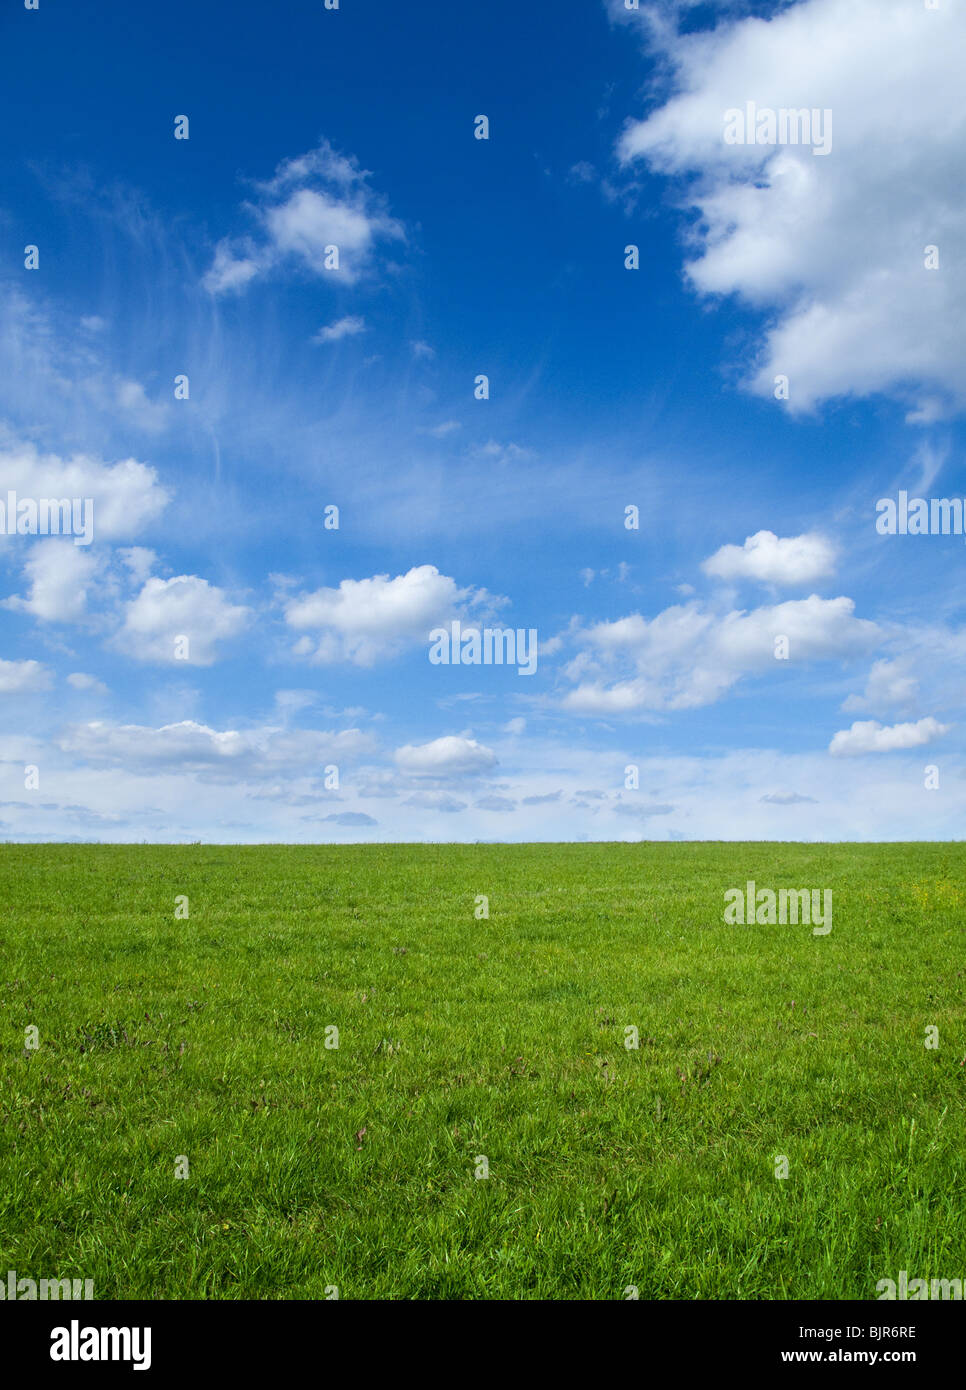 Landscape - Green field and blue sky - Stock Image